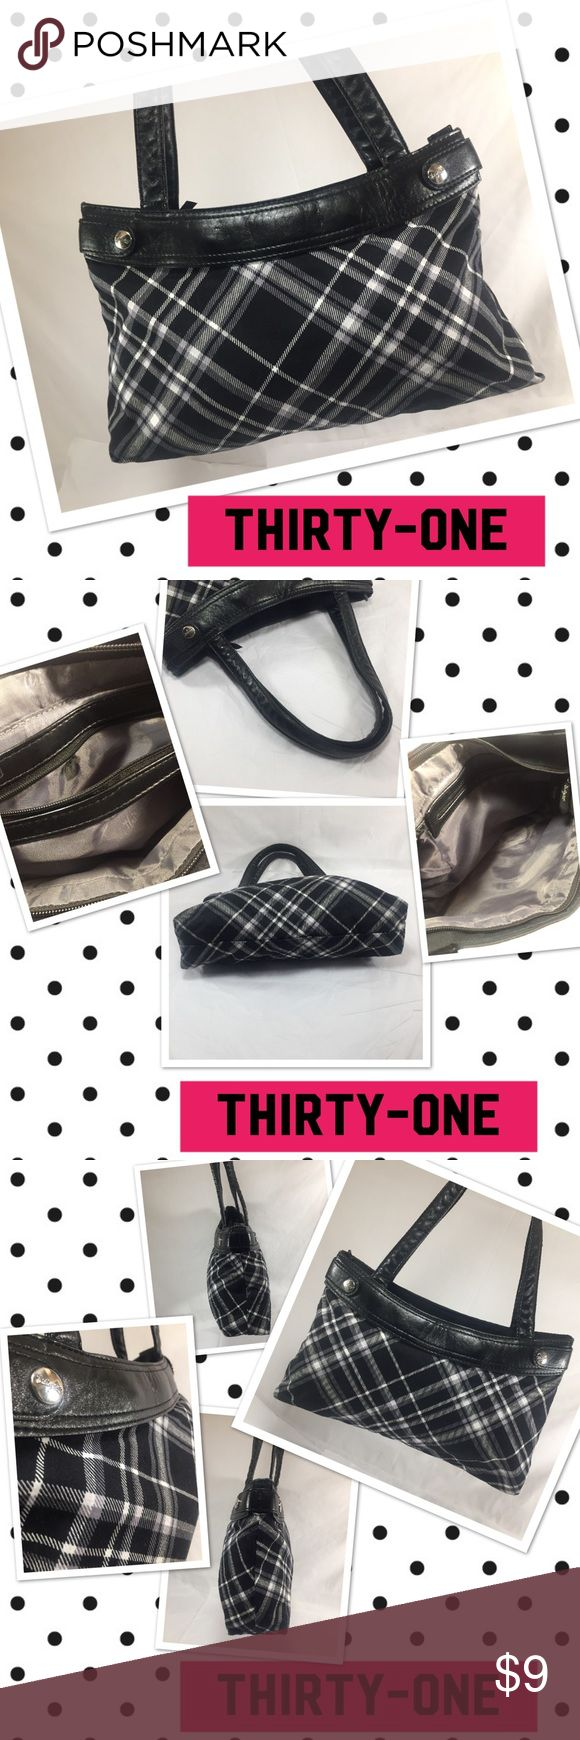 """THIRTY-ONE Black and White Plaid Handbag THIRTY-ONE Black and White Plaid Handbag.  15x8.5x3.5"""" with 8.75"""" strap drop.  Unknown materials but feels like cotton and manmade materials.  Silver tone hardware.  One interior zip pocket, one slip pocket, and overall zip closure.  Very nice preowned condition. Orig. $28. thirty-one Bags"""